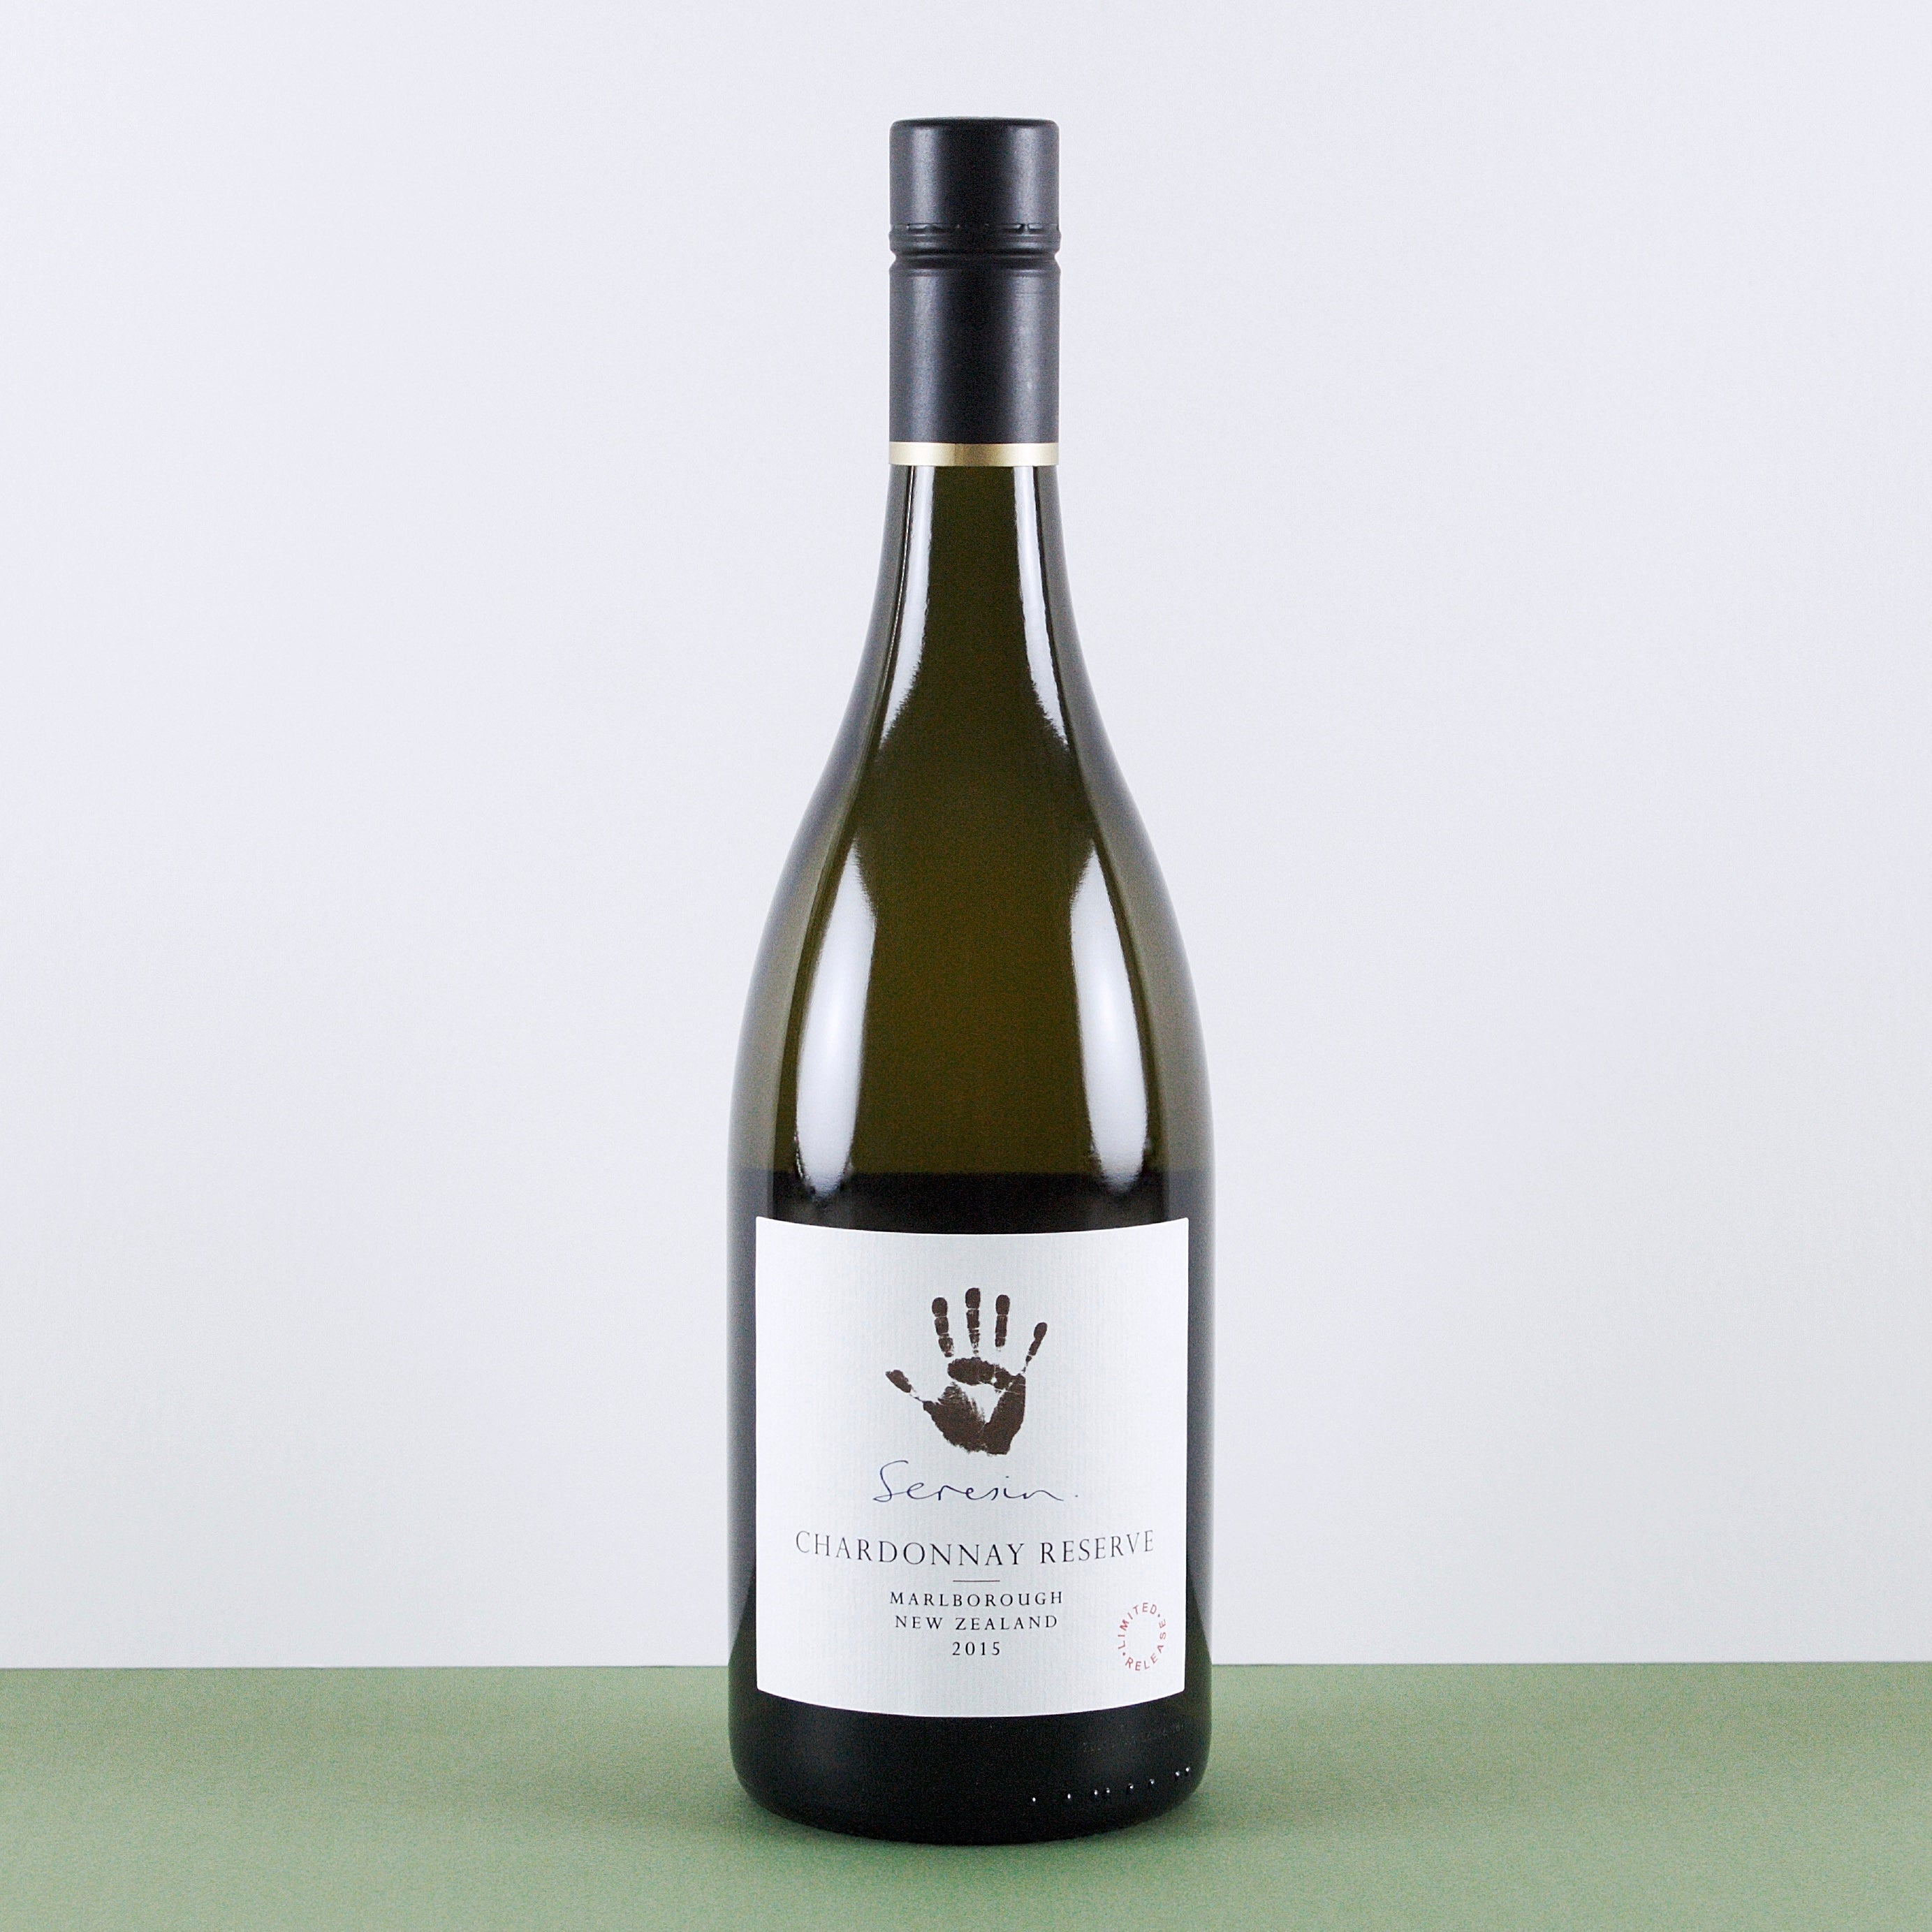 Chardonnay Reserve, Seresin, Marlborough